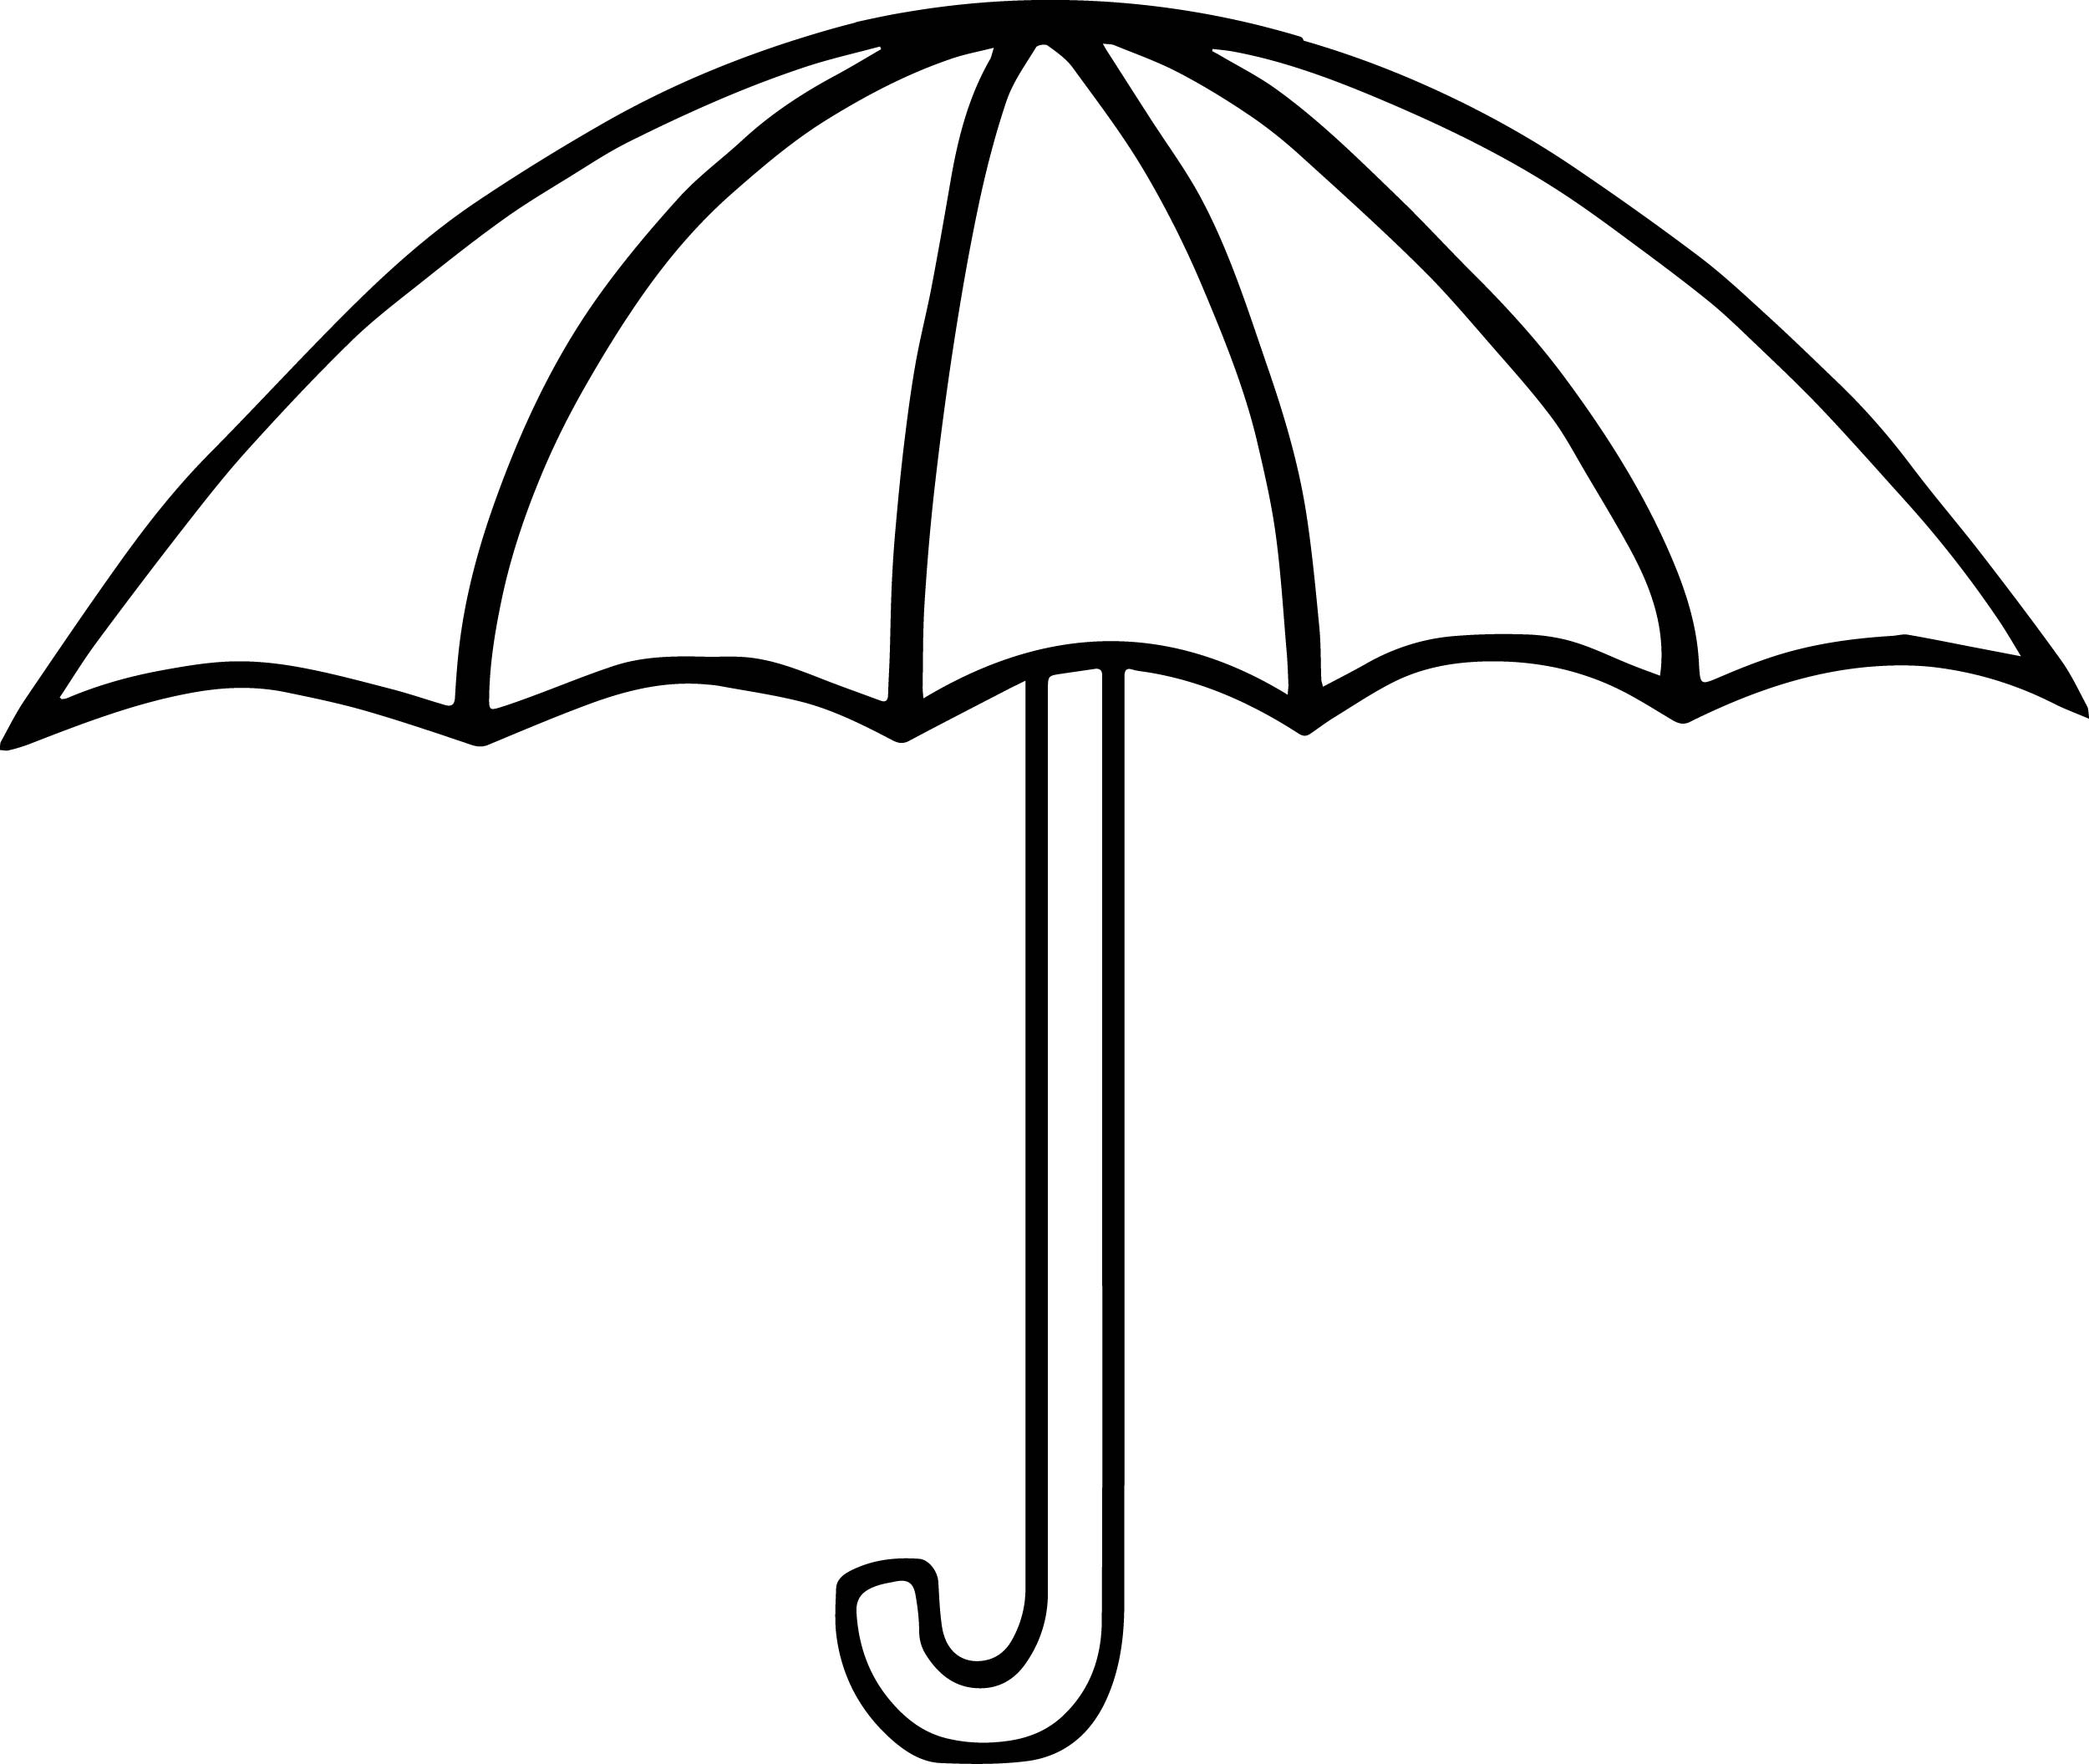 25+ Pretty Image of Umbrella Coloring Page